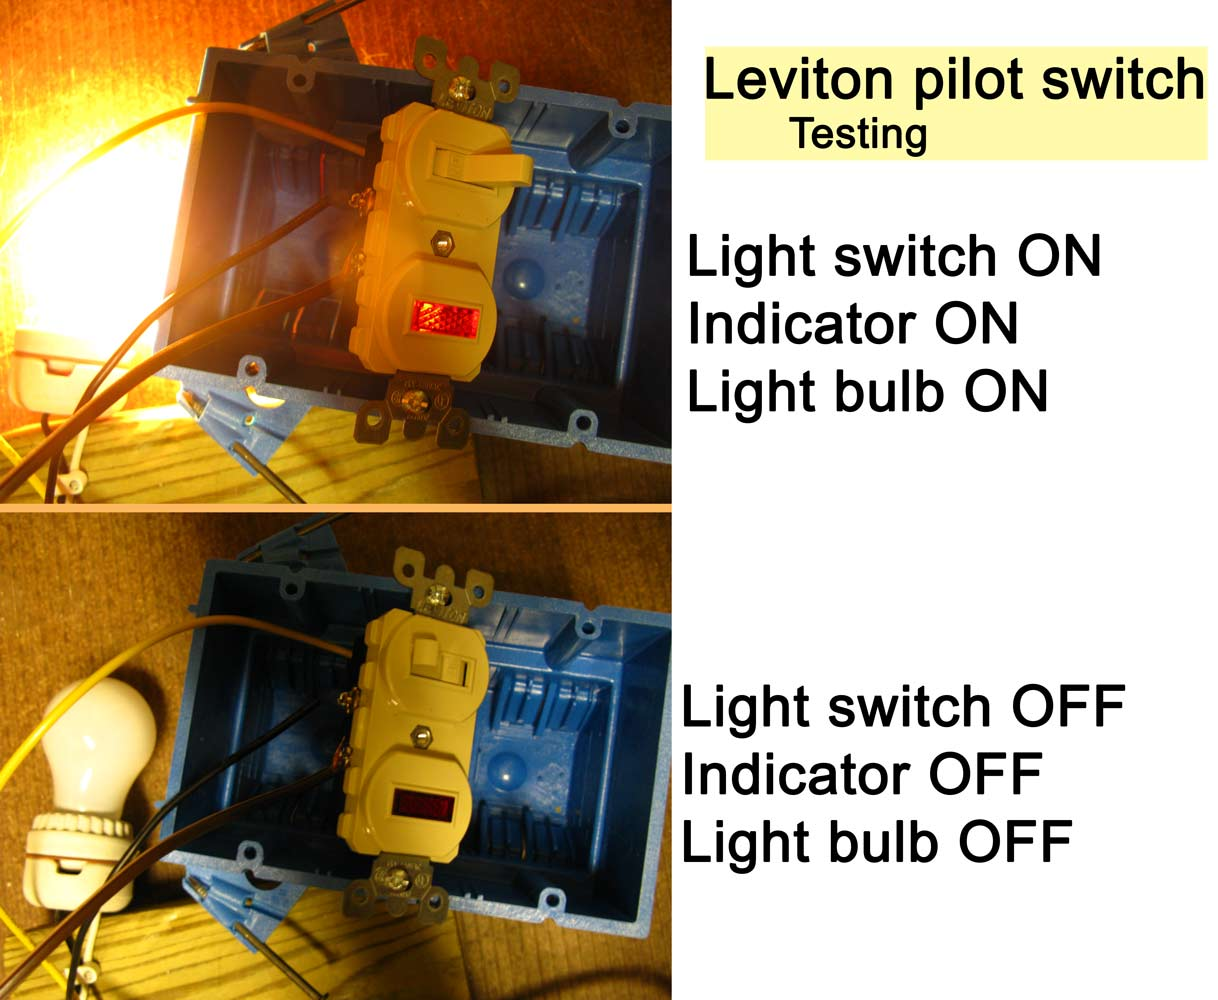 How To Wire Cooper 277 Pilot Light Switch Leviton 4 Way Wiring Diagram For See Testing Photographs 1 2